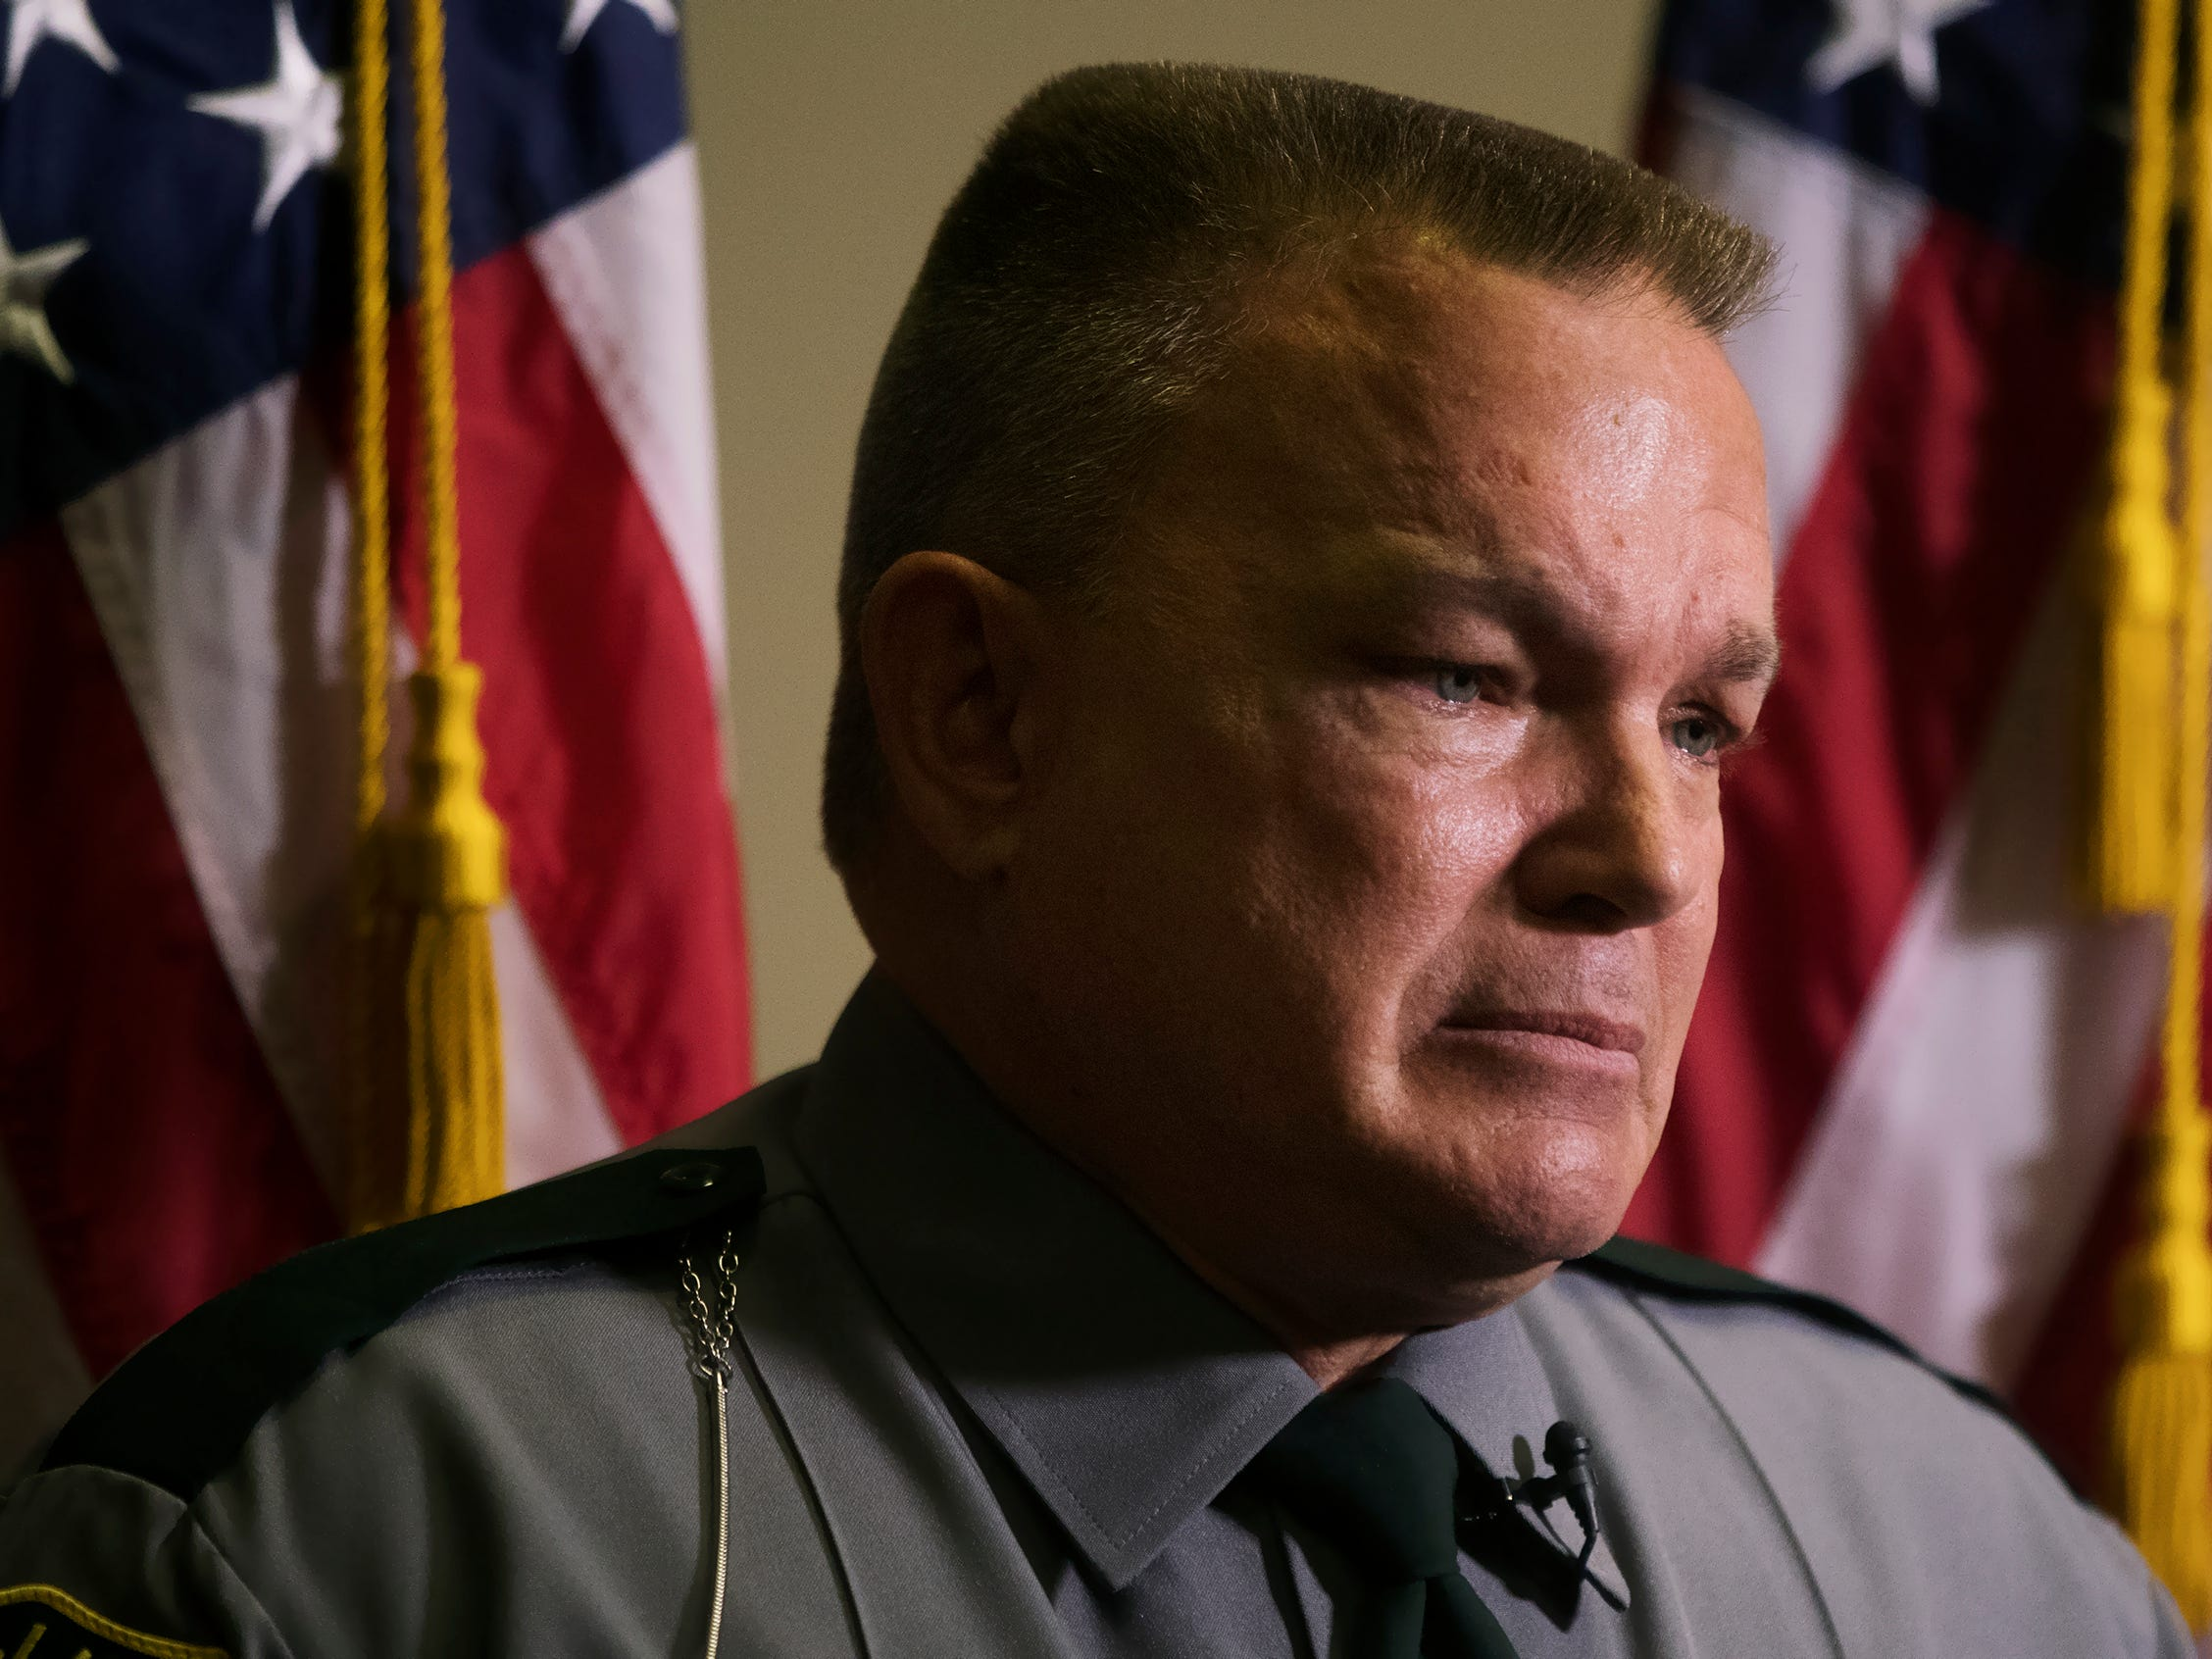 Corporal William Pschigoda, of the Collier County Sheriff's Office, was among those honoring local law enforcement officers killed in the line of duty at a memorial on Wednesday at the East Naples United Methodist Church. Thirteen officers have been killed in Collier County since 1928.